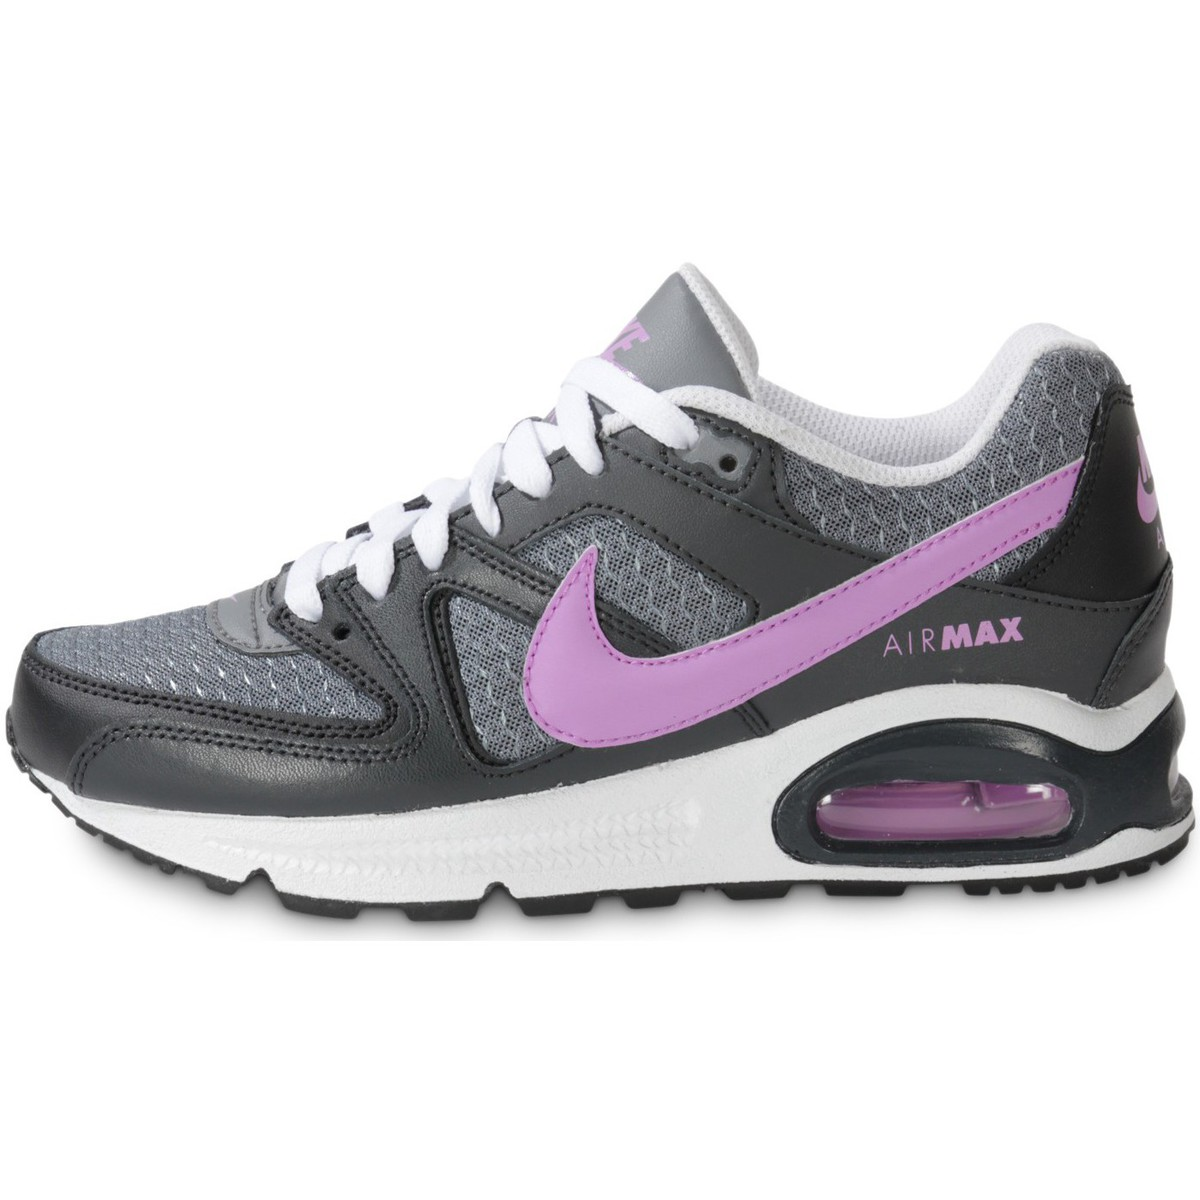 Nike Air Max Command Femme Officiel Atelier  [9875811]